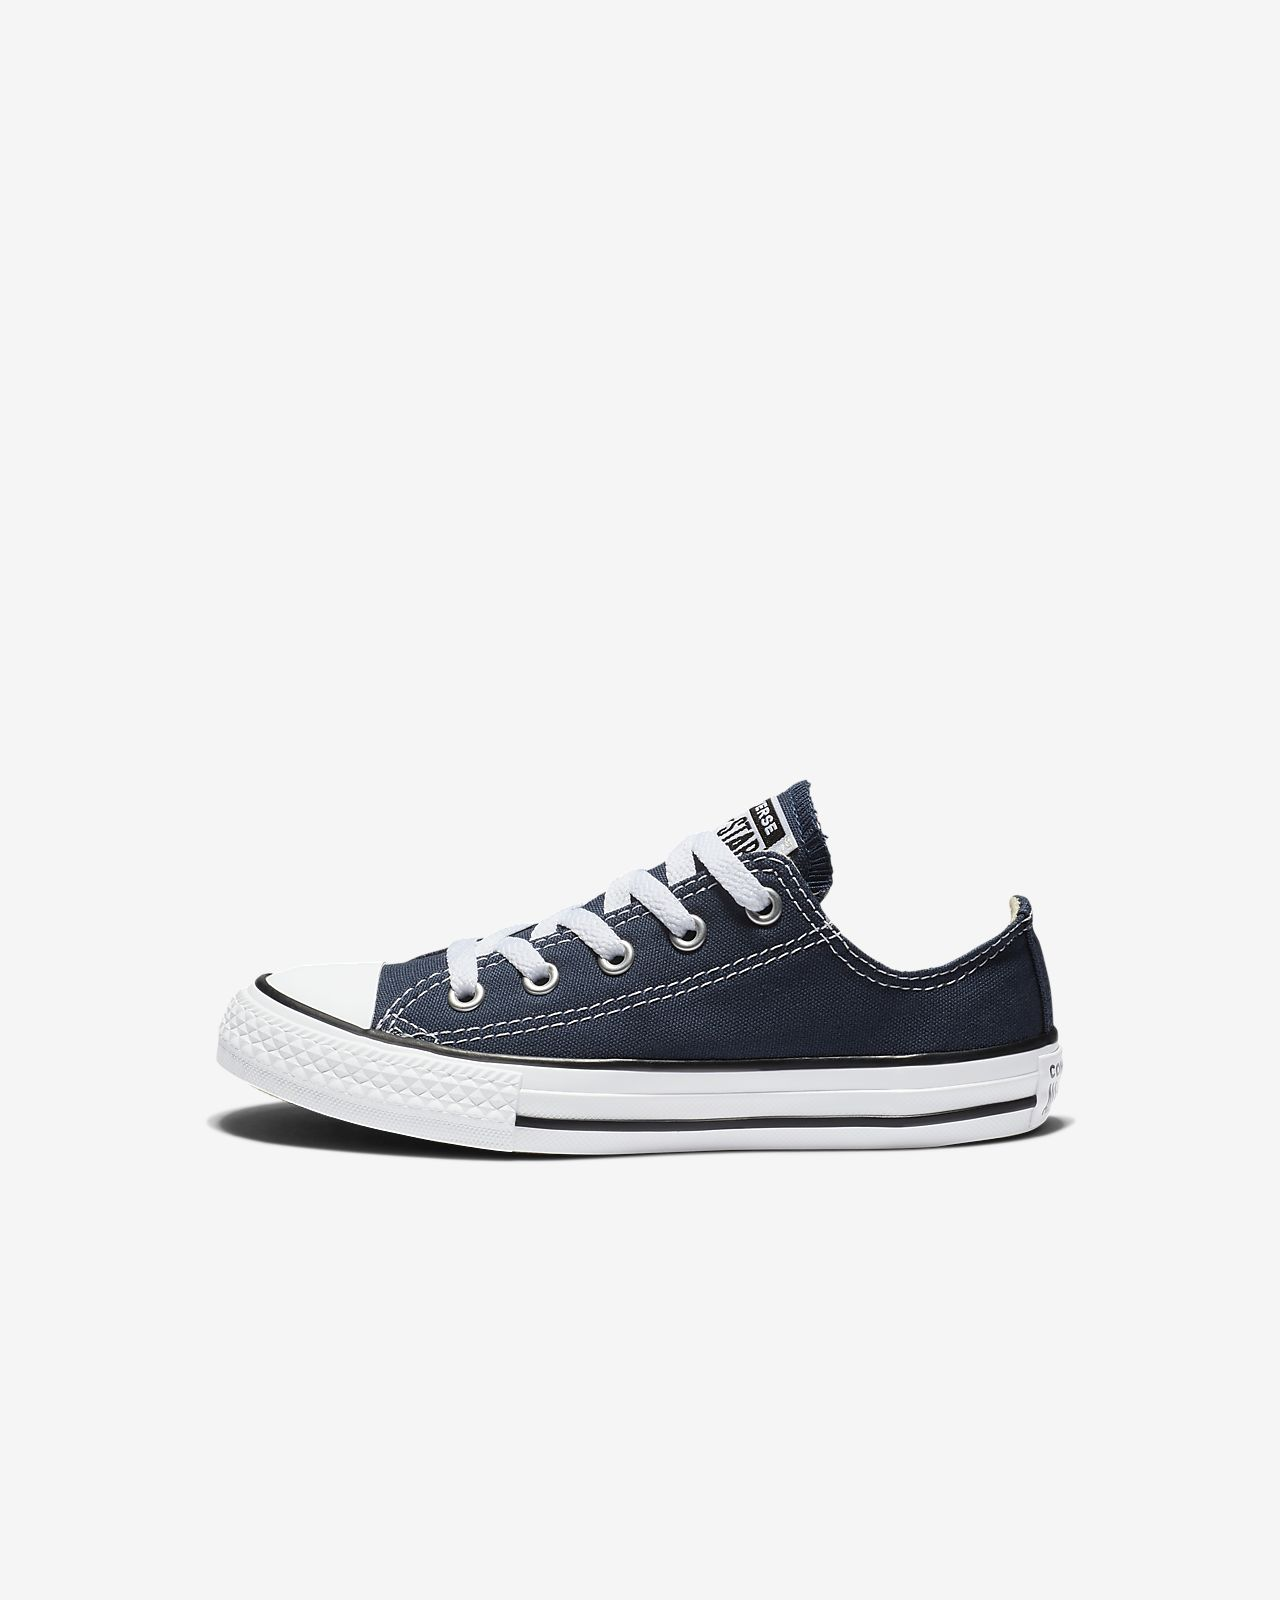 ddc494107727 Converse Chuck Taylor All Star Low Top (10.5c-3y) Little Kids  Shoe ...